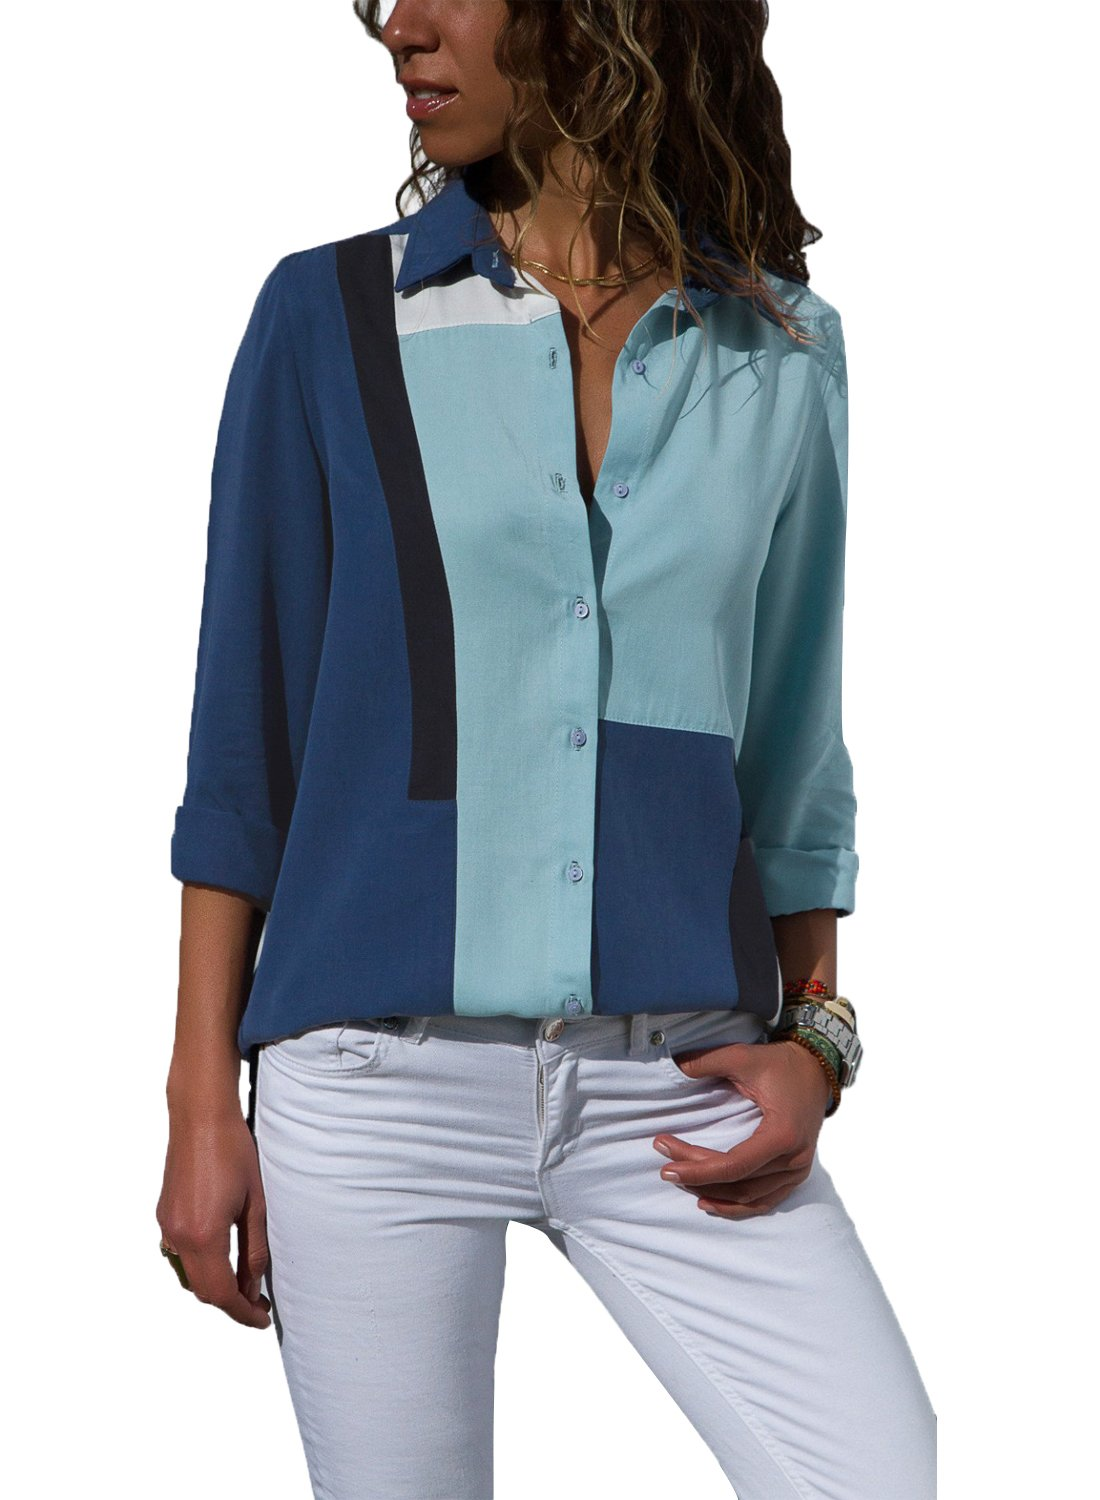 Astylish Women Loose Fit Long Sleeve Collared Color Block Tunic Blouse Tops Shirts Medium 8 10 Navy Blue